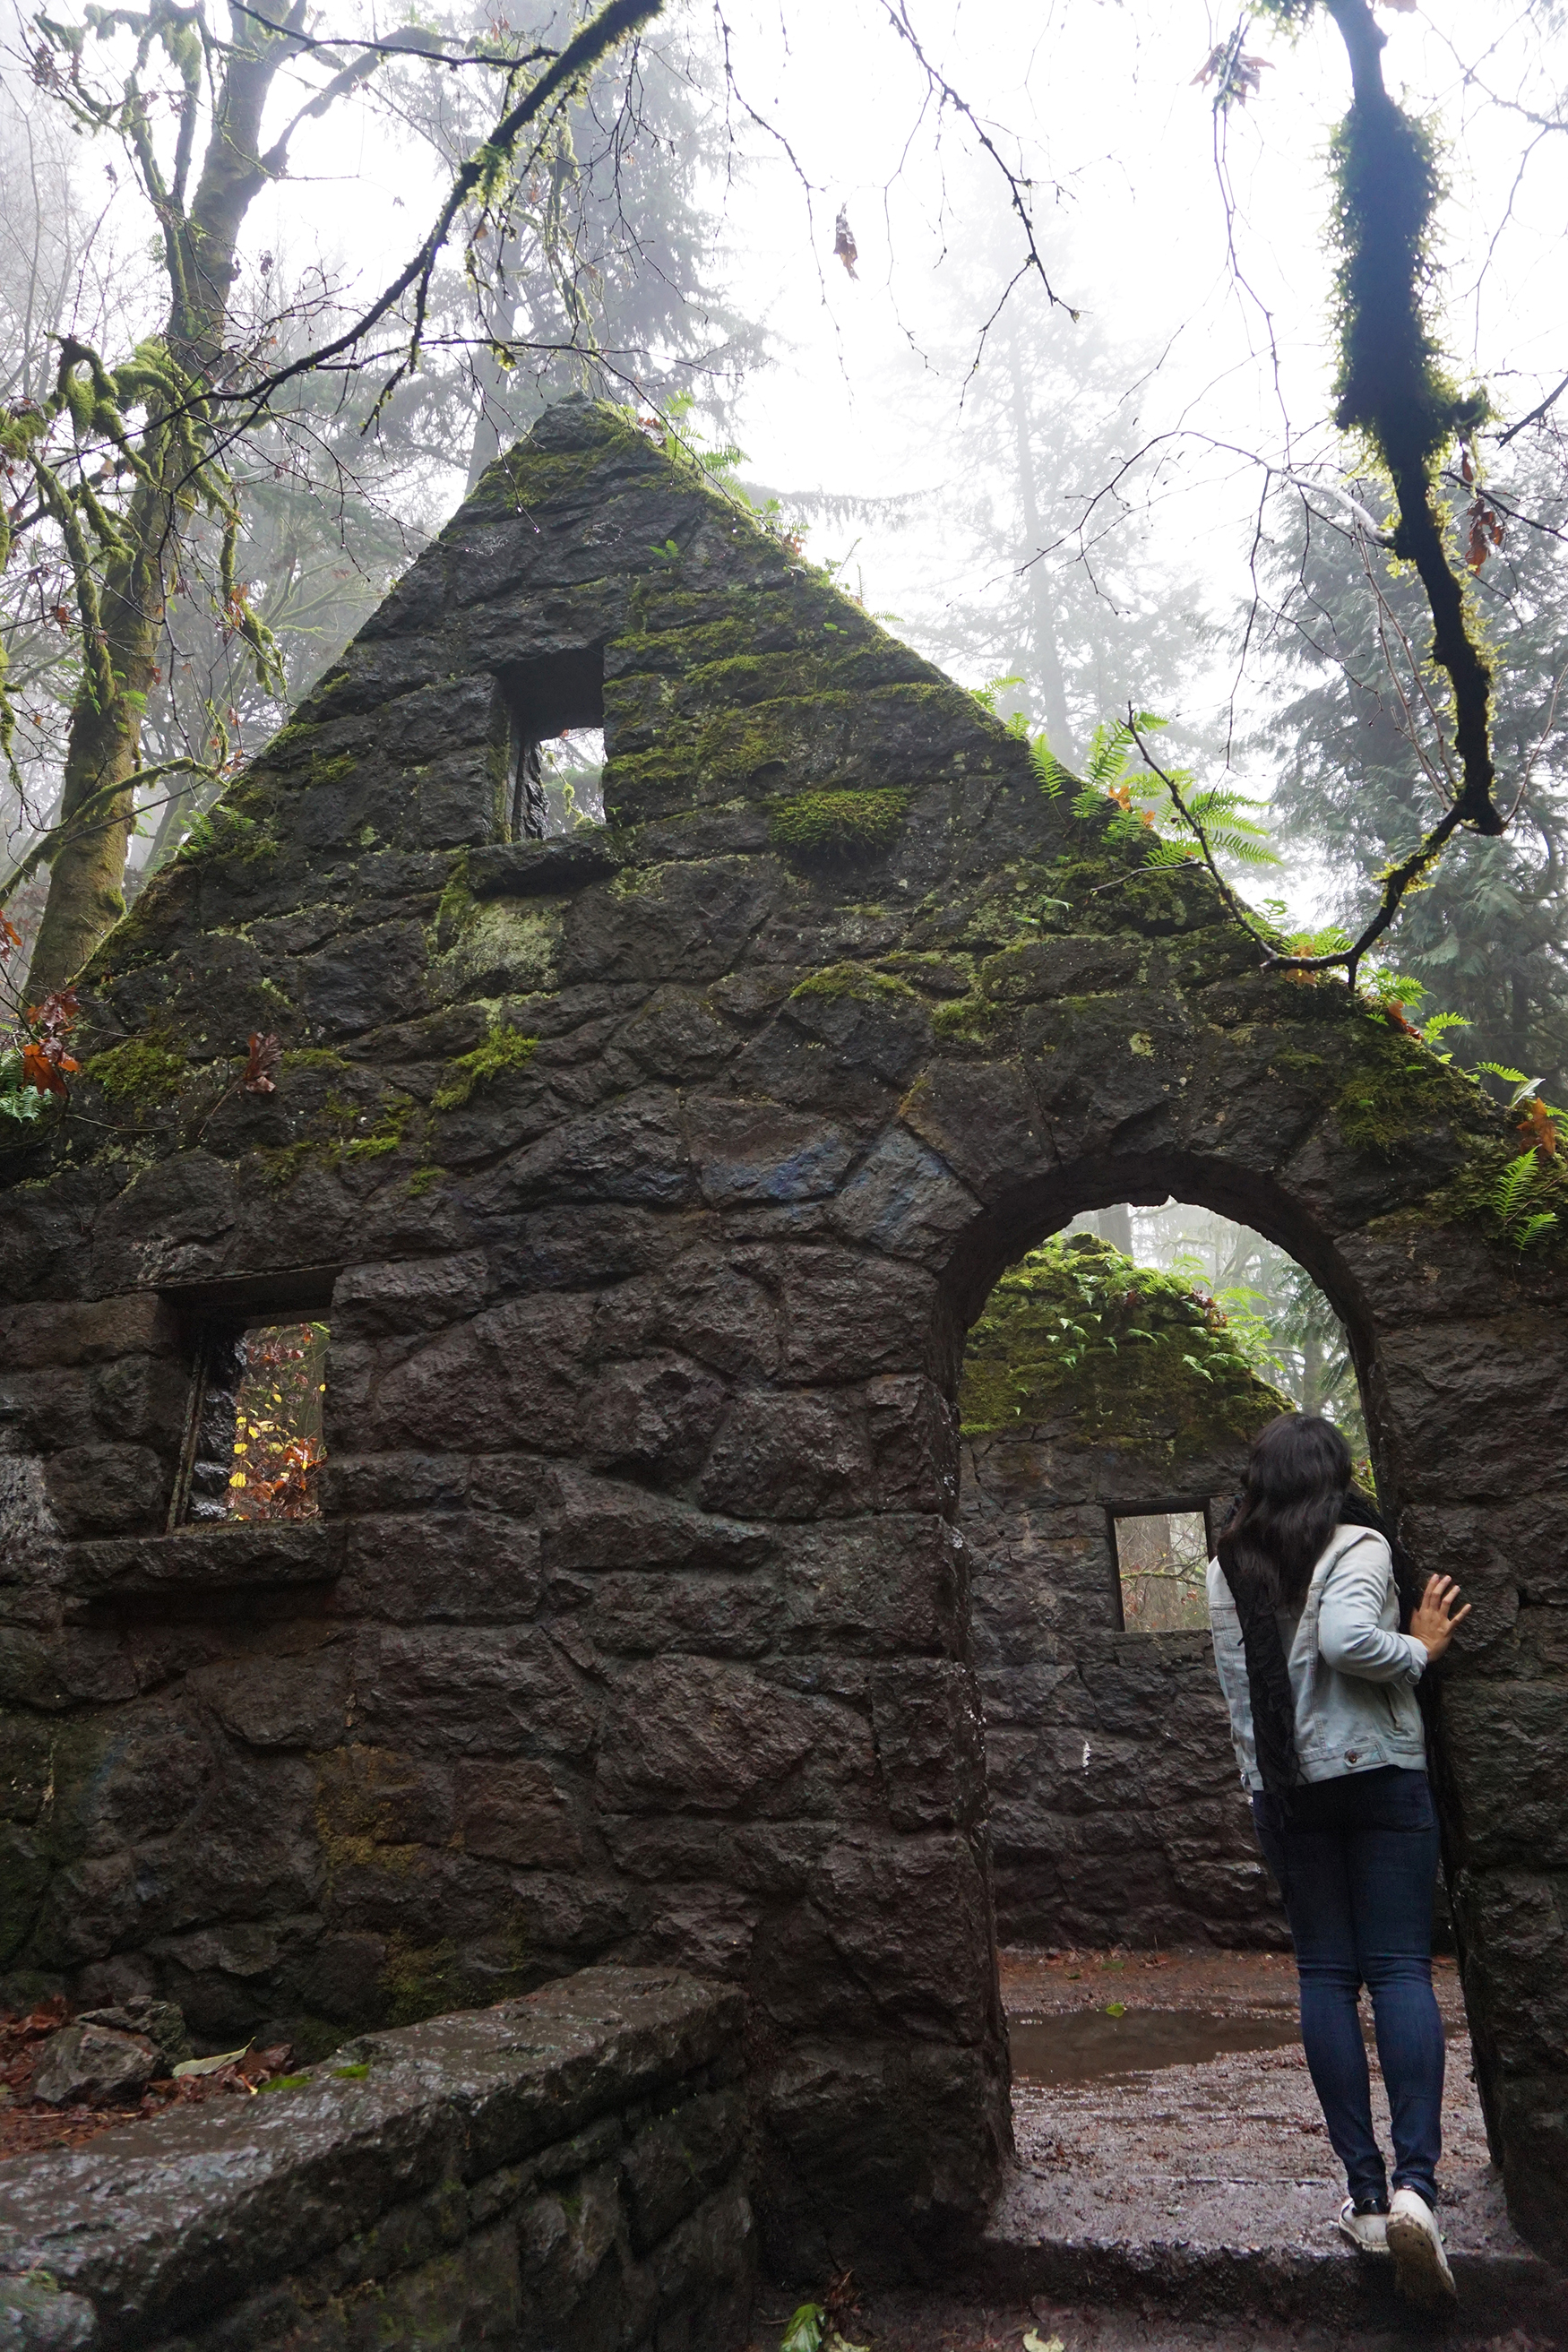 This is technically known as the Stone House in Forest Park - but it is more fondly known by locals as the Witch's House